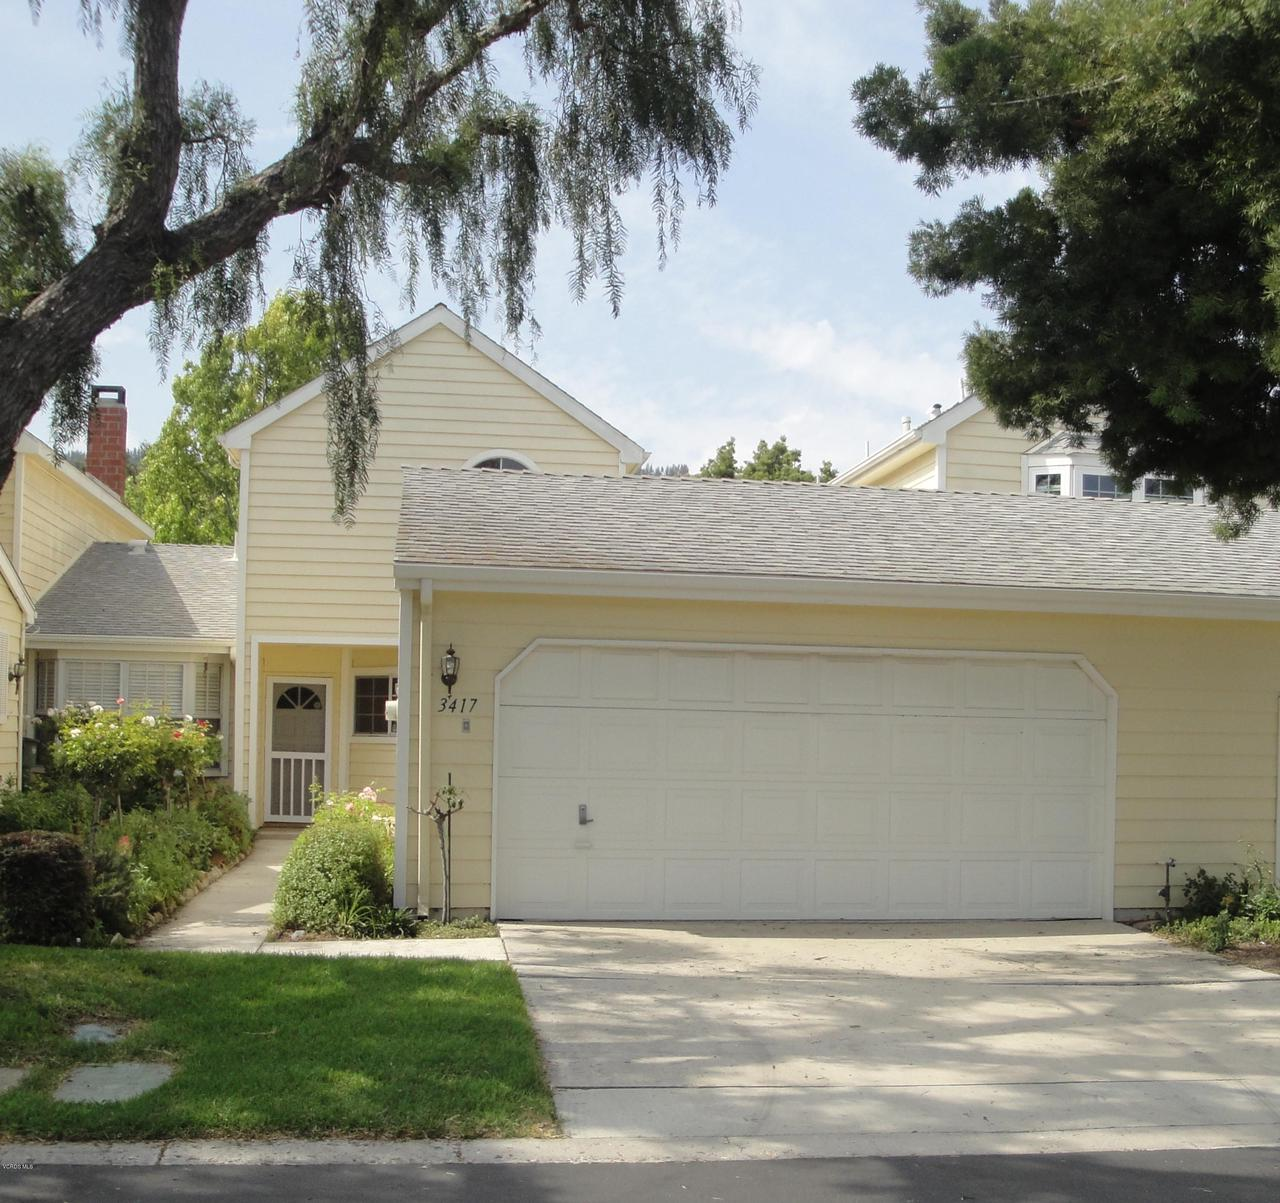 Photo of 3417 RIO HATO COURT, Camarillo, CA 93010